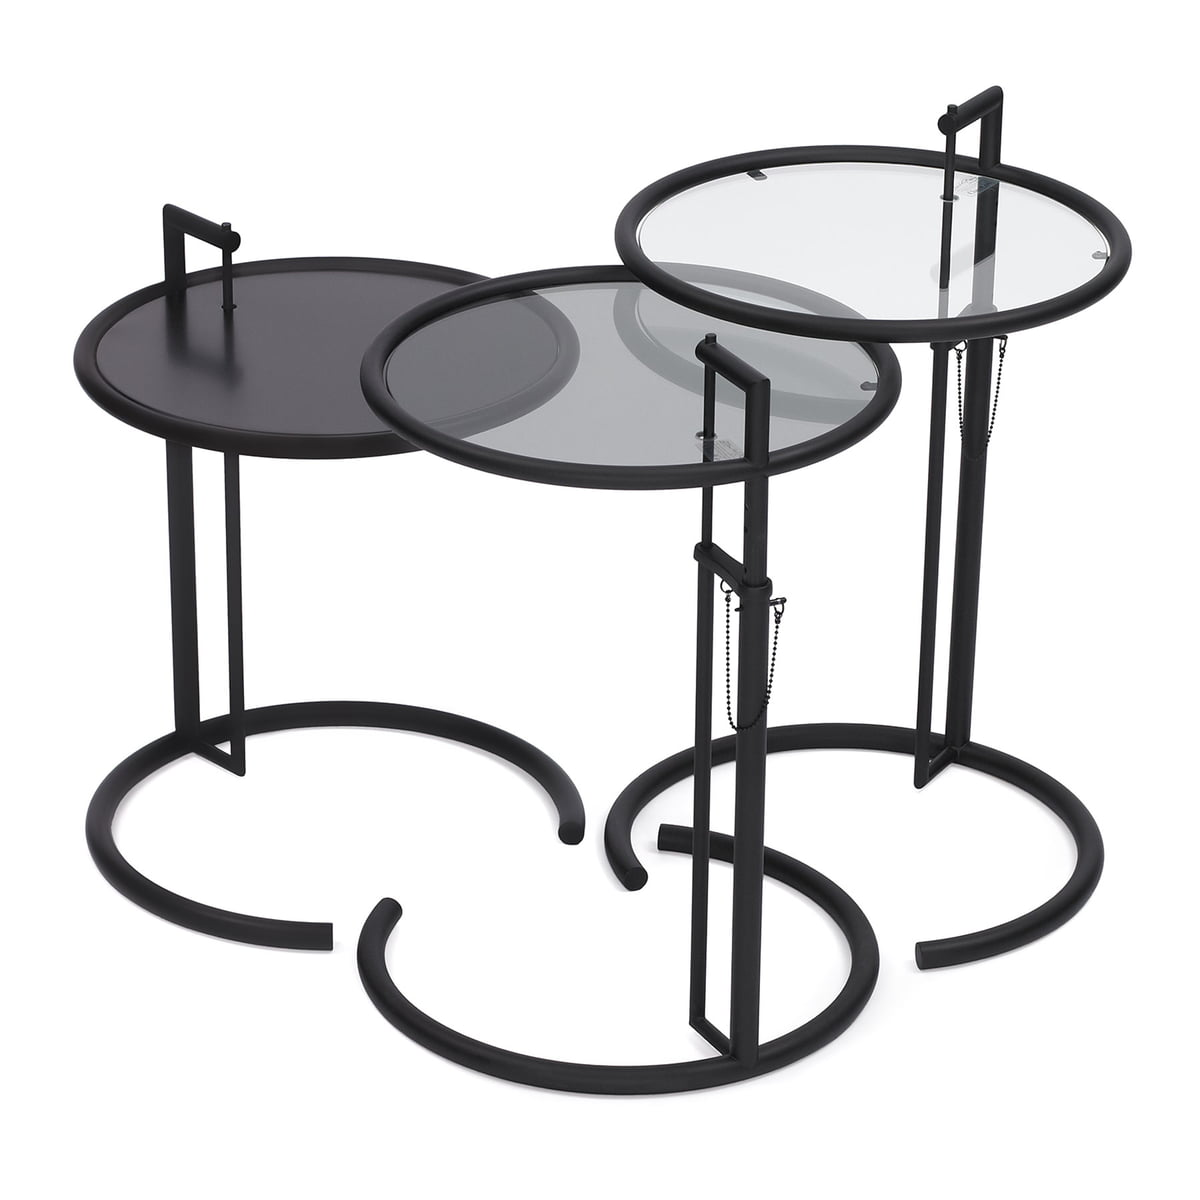 Buy The Adjustable Table E By ClassiCon - Eileen gray end table